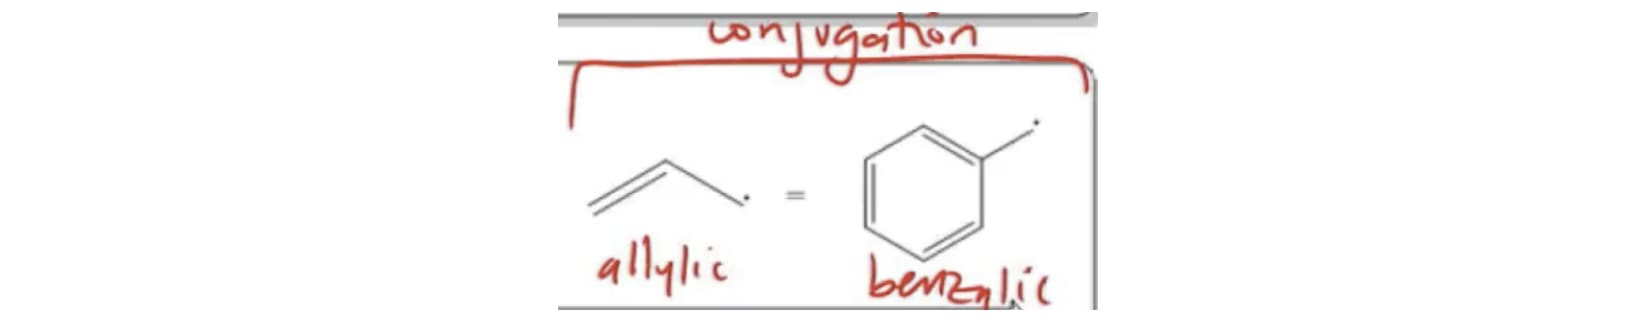 Allylic and Benzylic Radicals